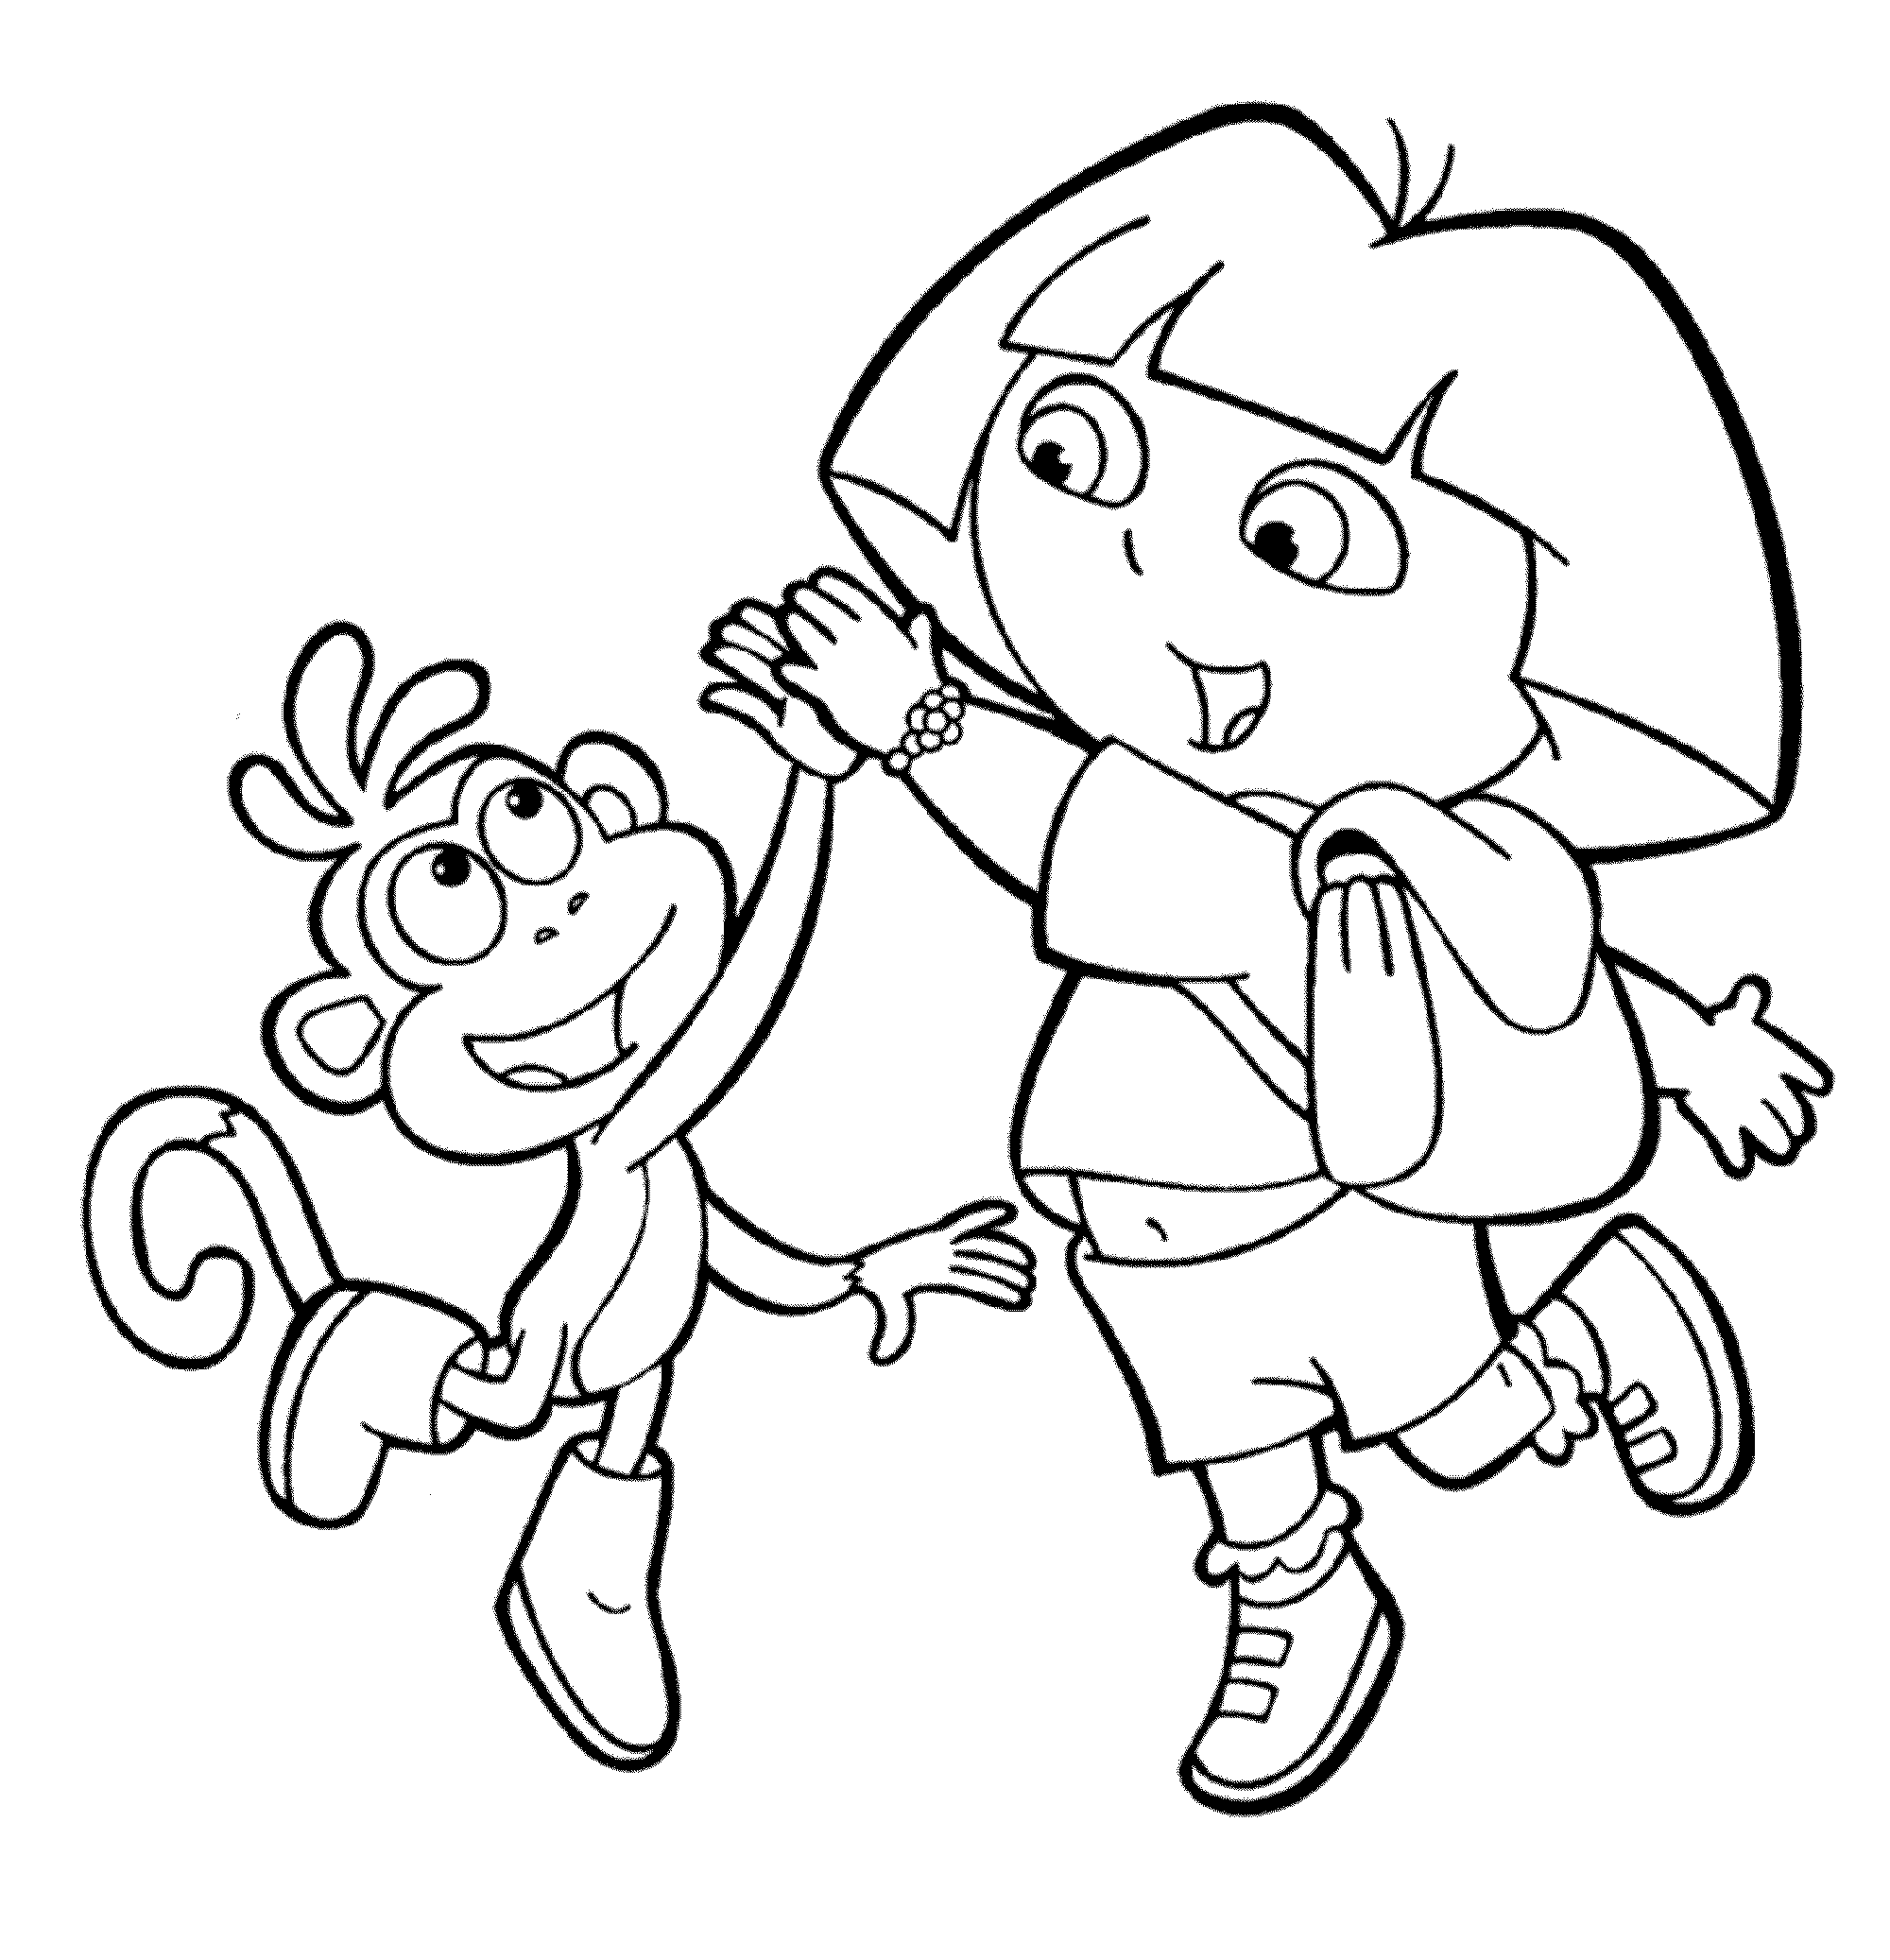 dora colouring print download dora coloring pages to learn new things dora colouring 1 3